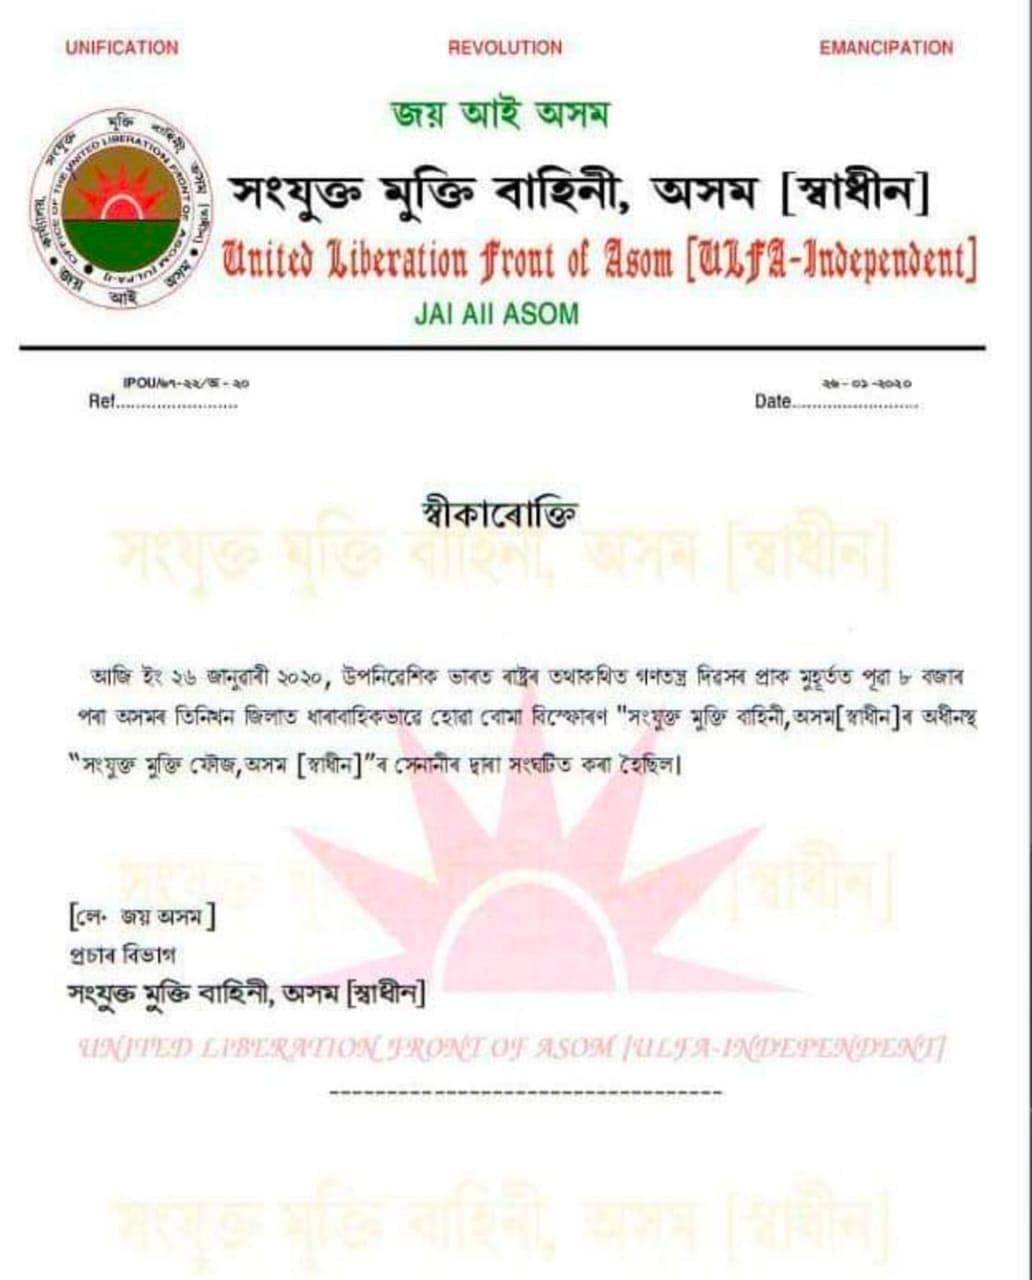 Press statement issued by ULFA-I